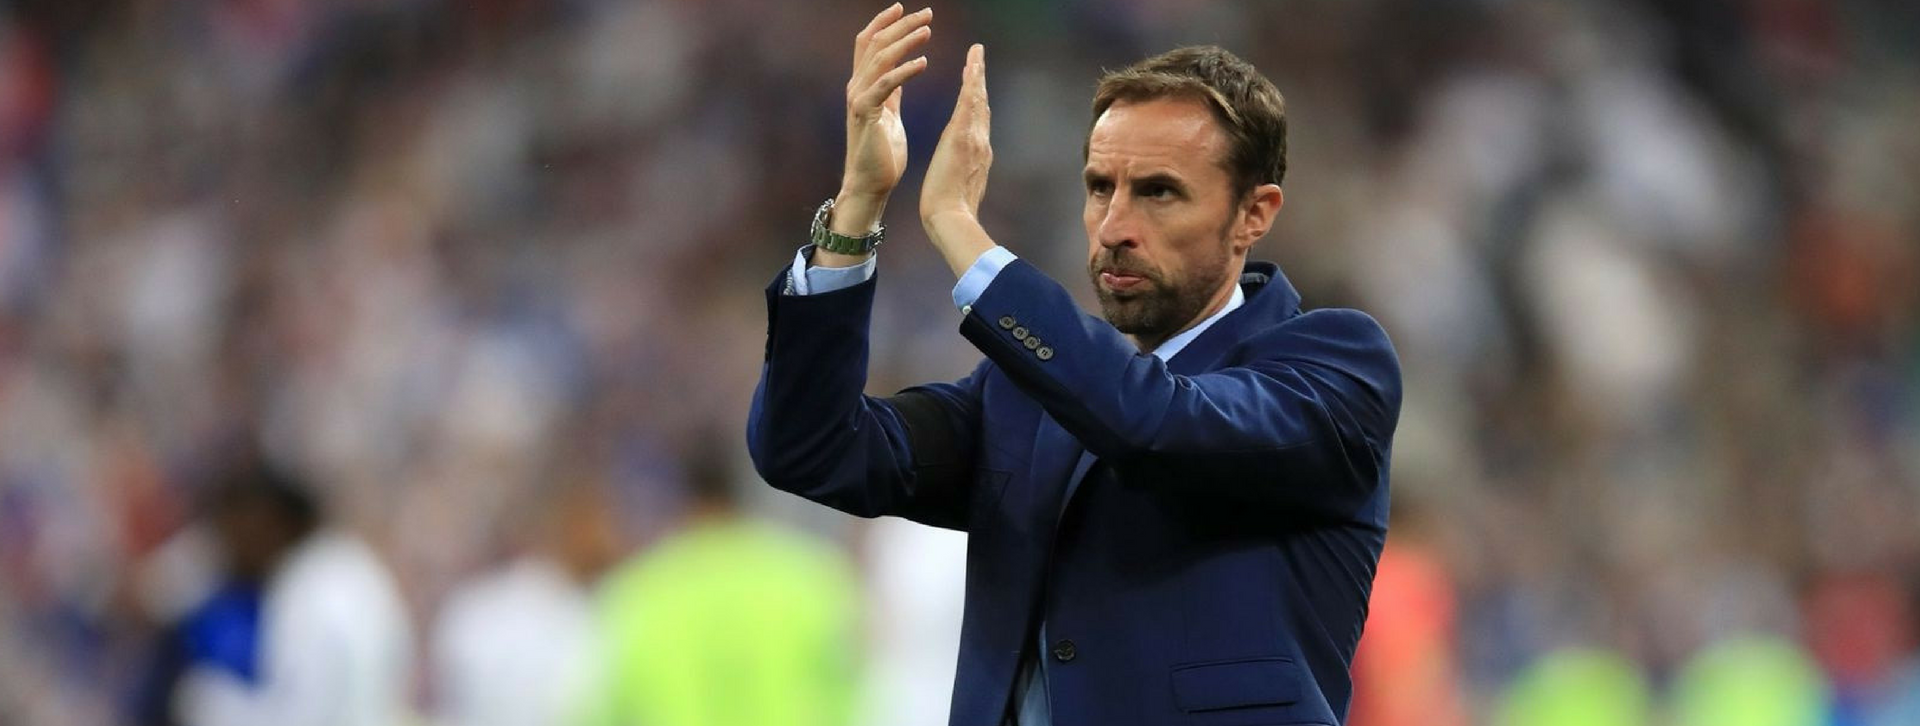 Gareth Southgate clapping